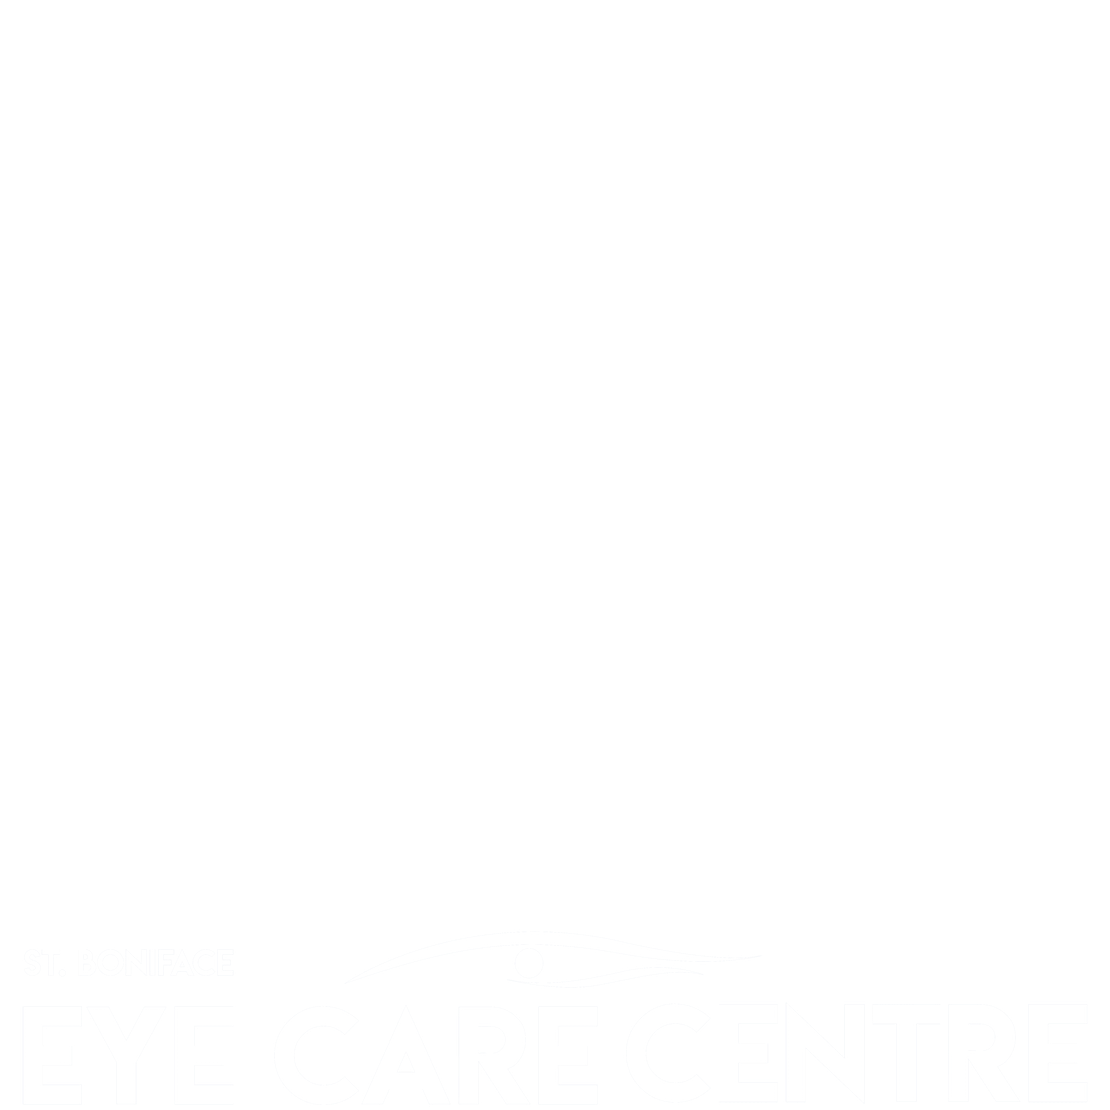 St. Boniface Eye Care Centre